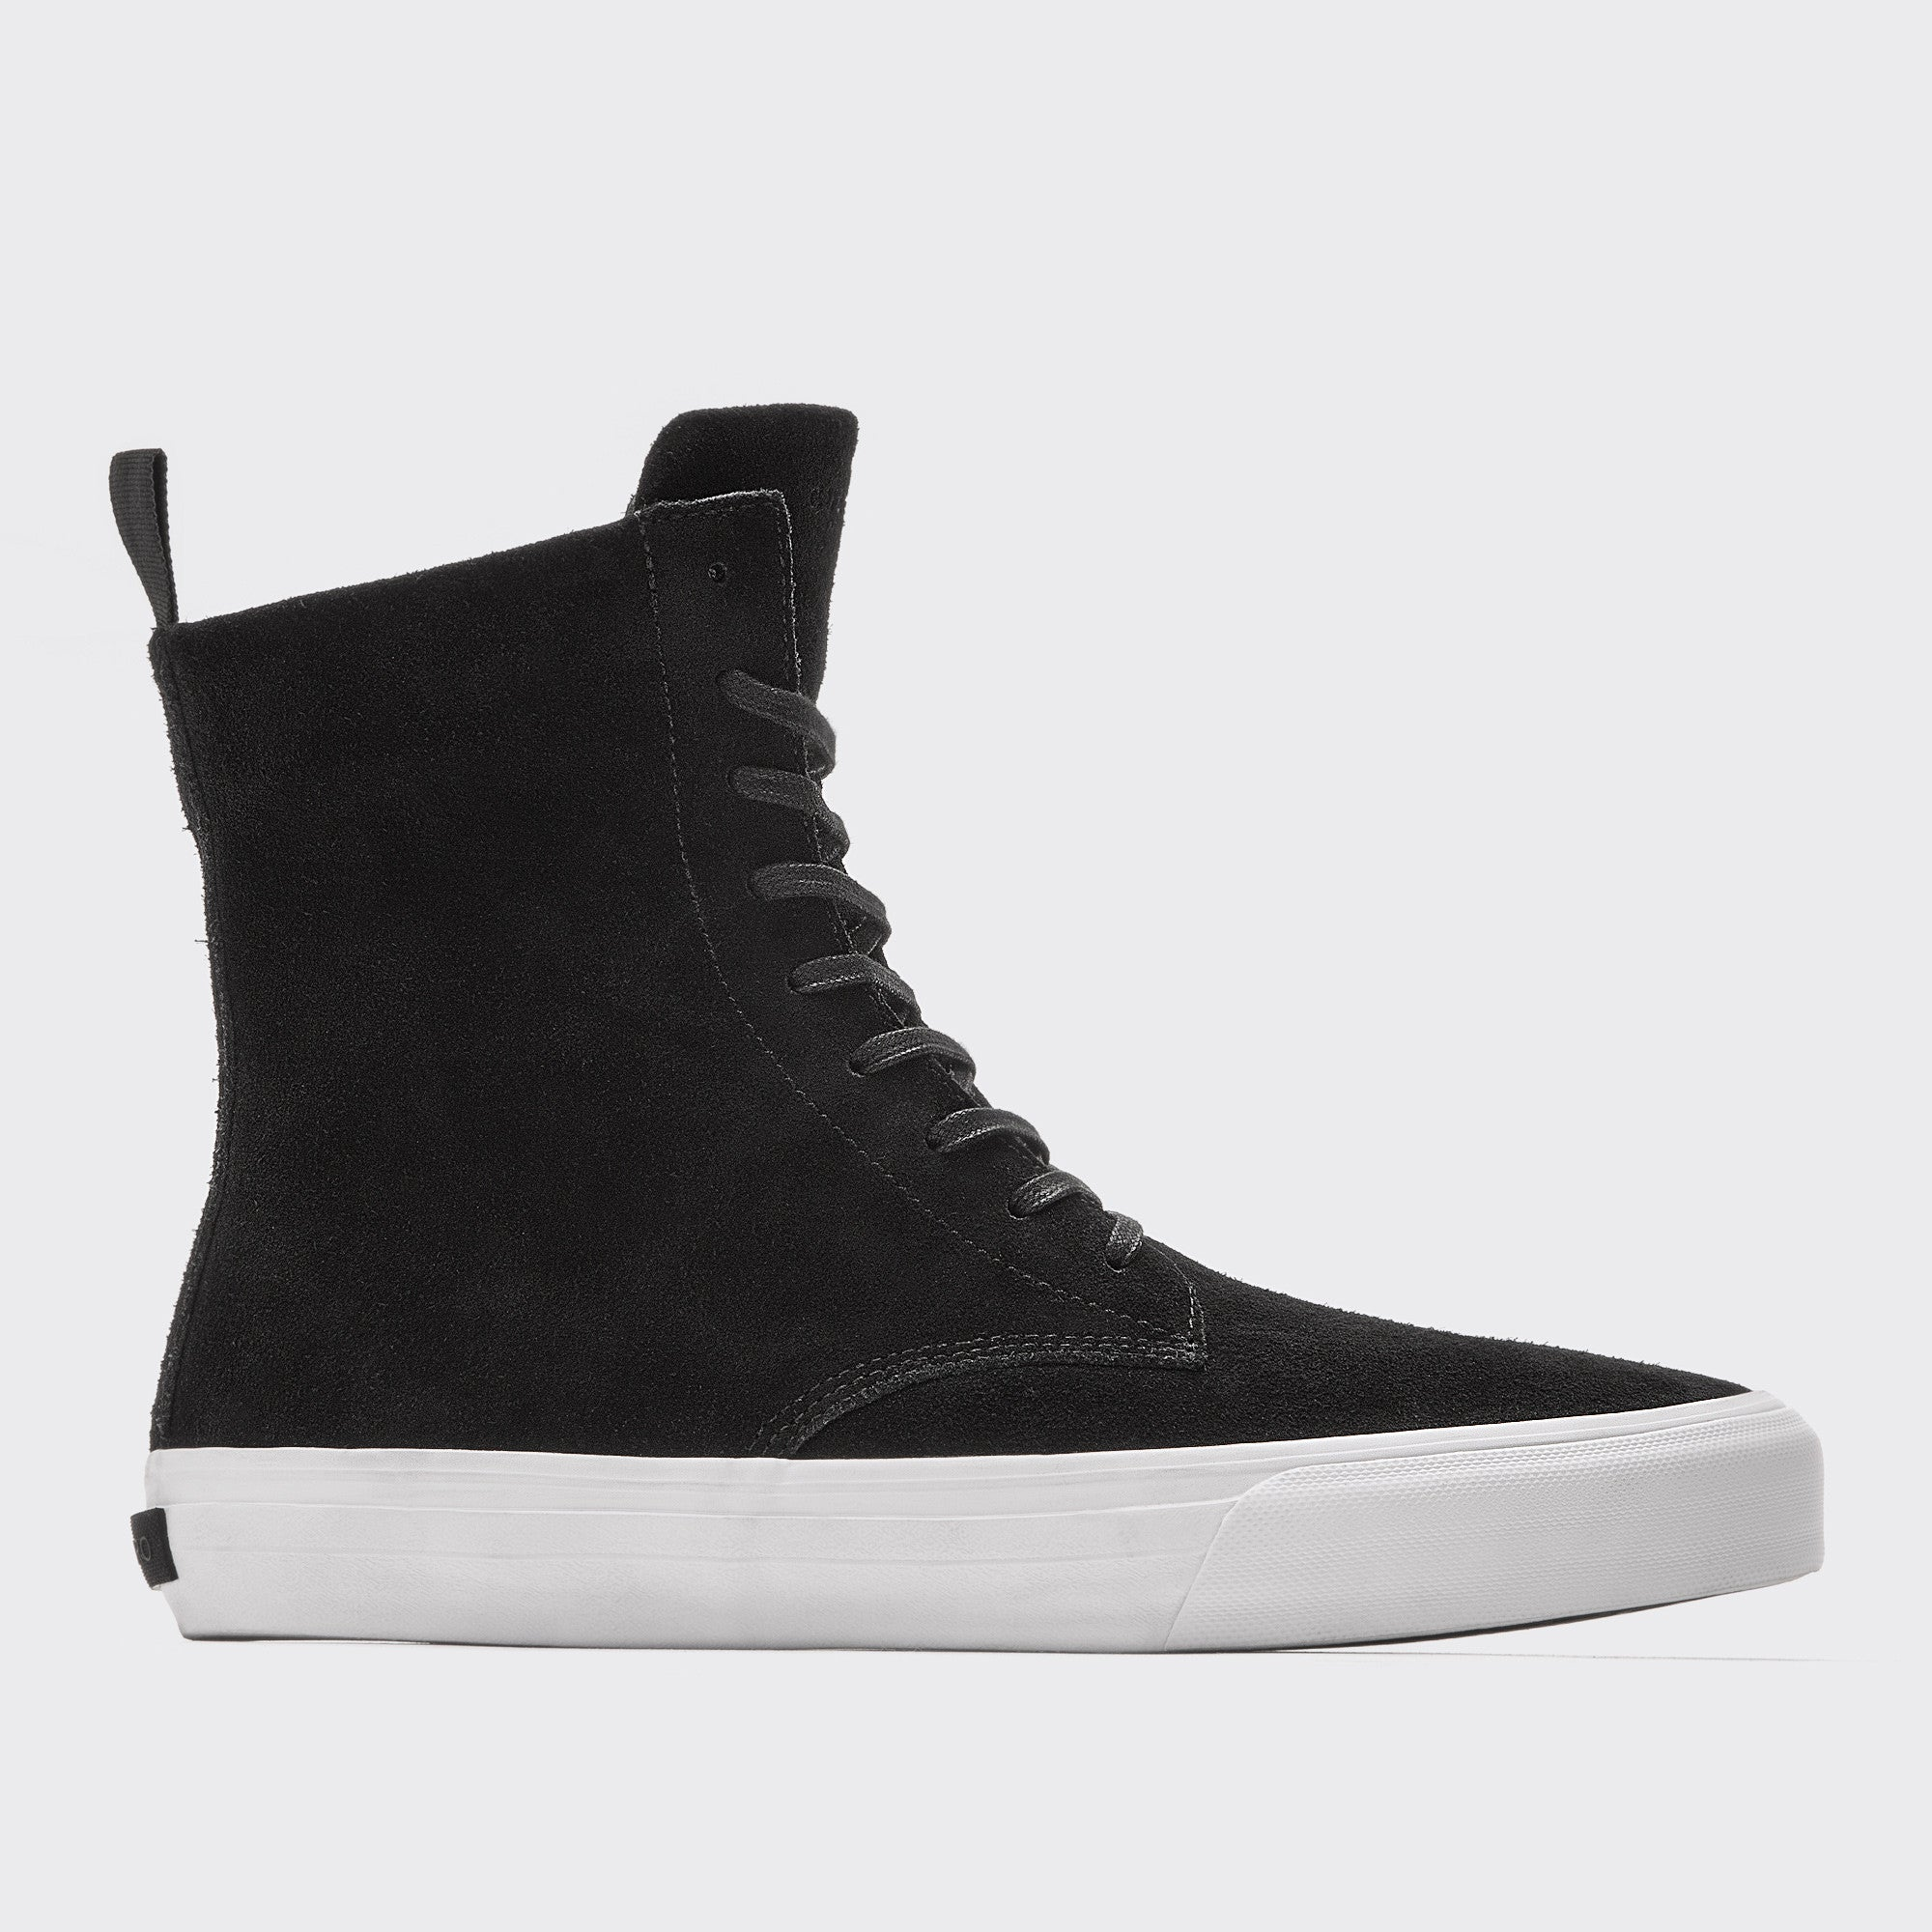 SCOUT | BLACK - Black Suede Extra High